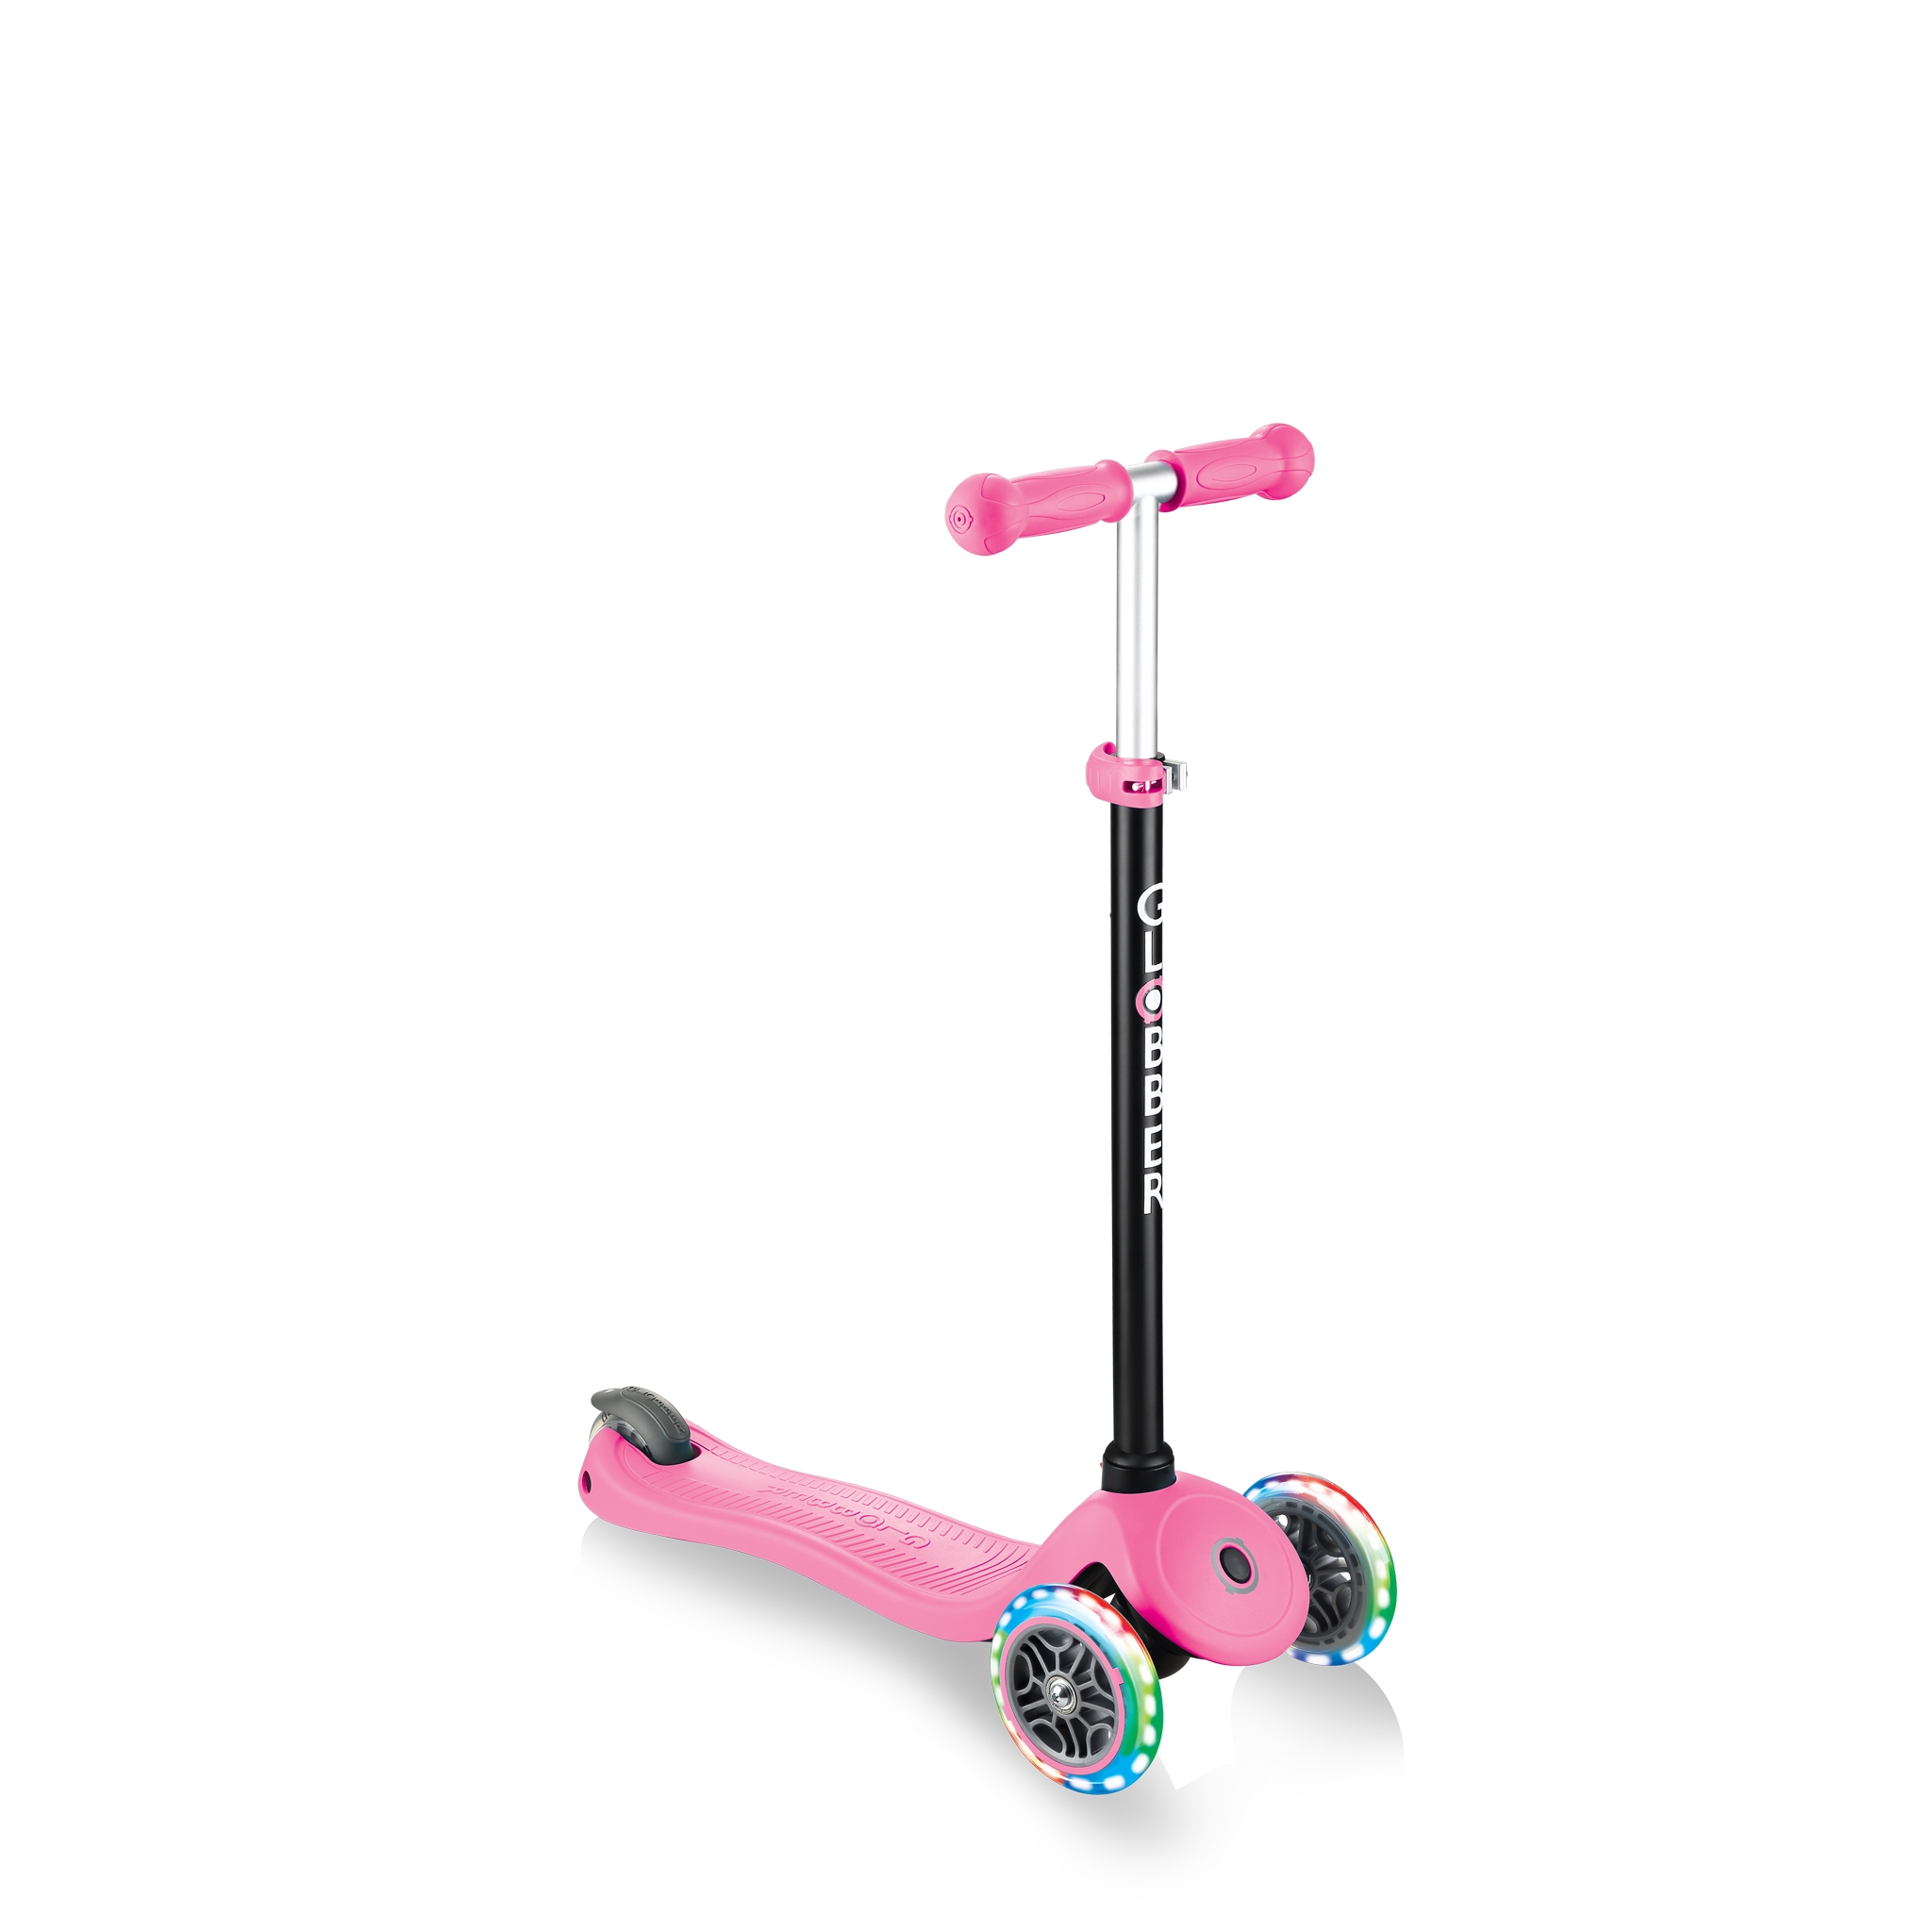 GO-UP-SPORTY-PLUS-LIGHTS-scooter-with-seat-scooter-mode_deep-pink 4